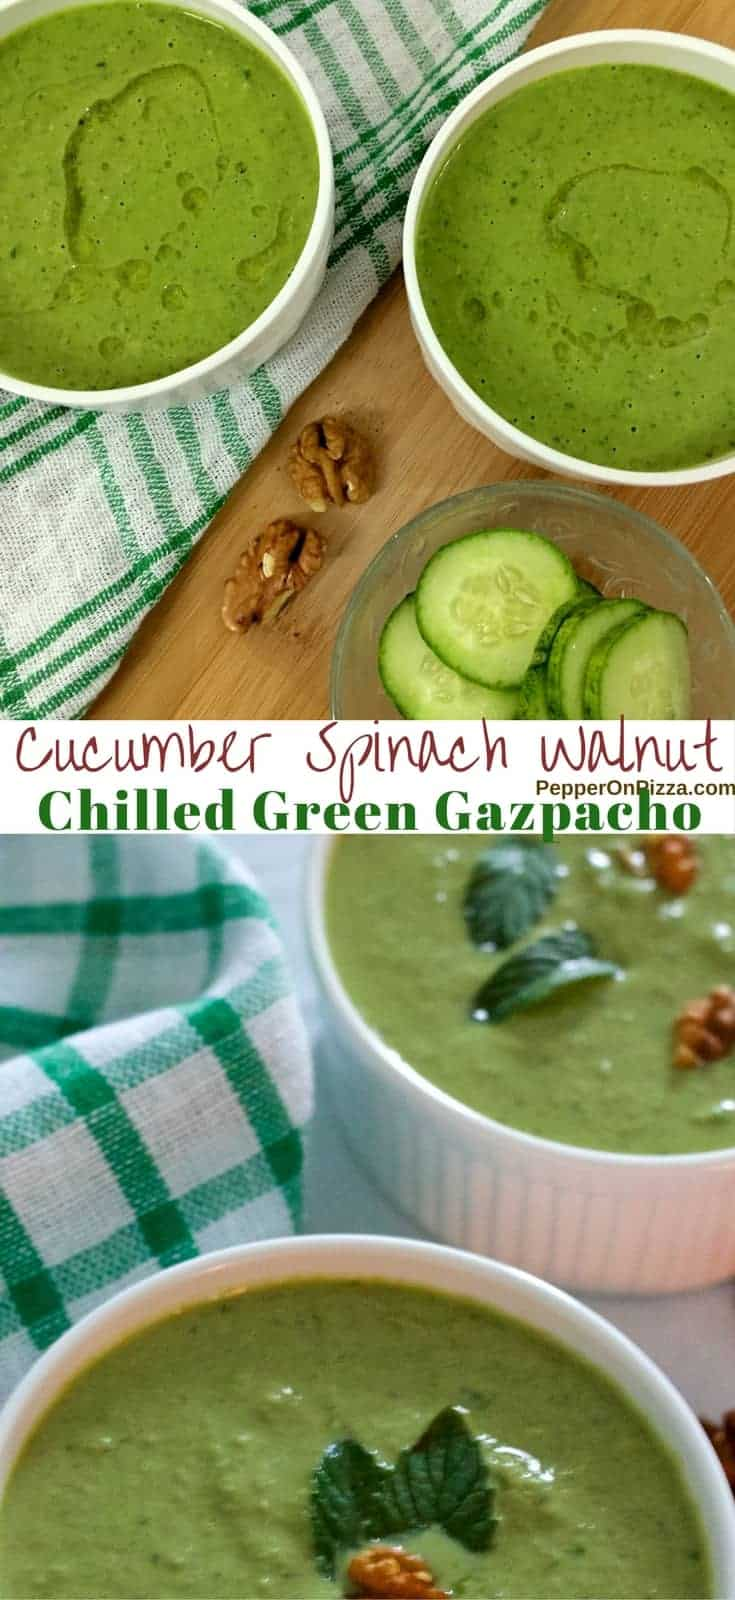 Refreshing Cucumber Spinach Walnut Chilled Green Gazpacho from Yotam Ottolenghi's Recipe in the Plenty Cookbook. Delicious Health in a Bowl!